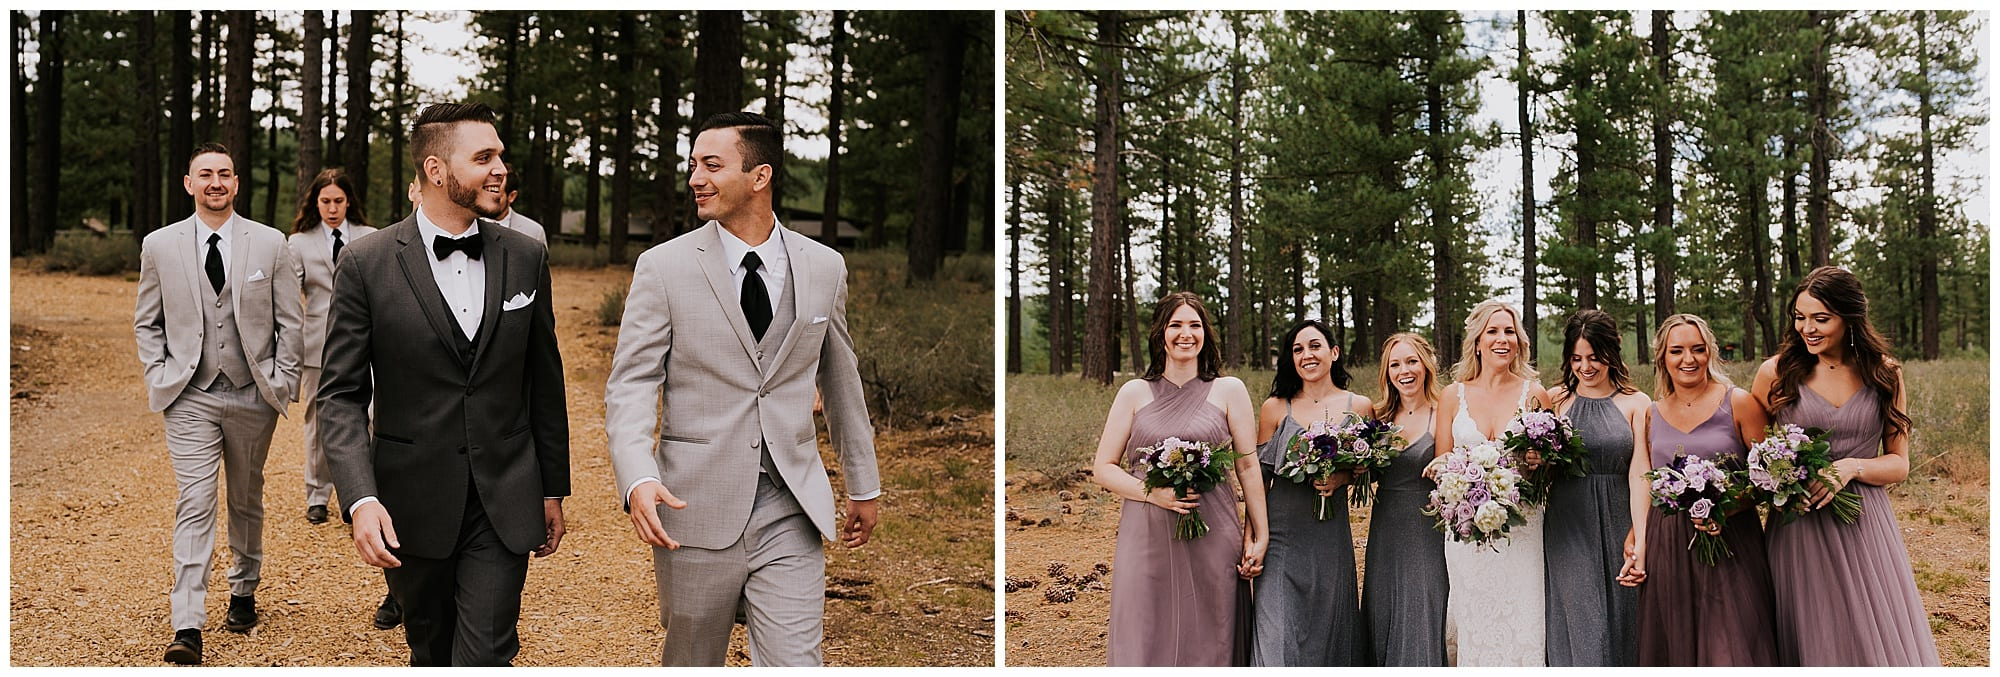 bridal party pictures in outdoor California wedding